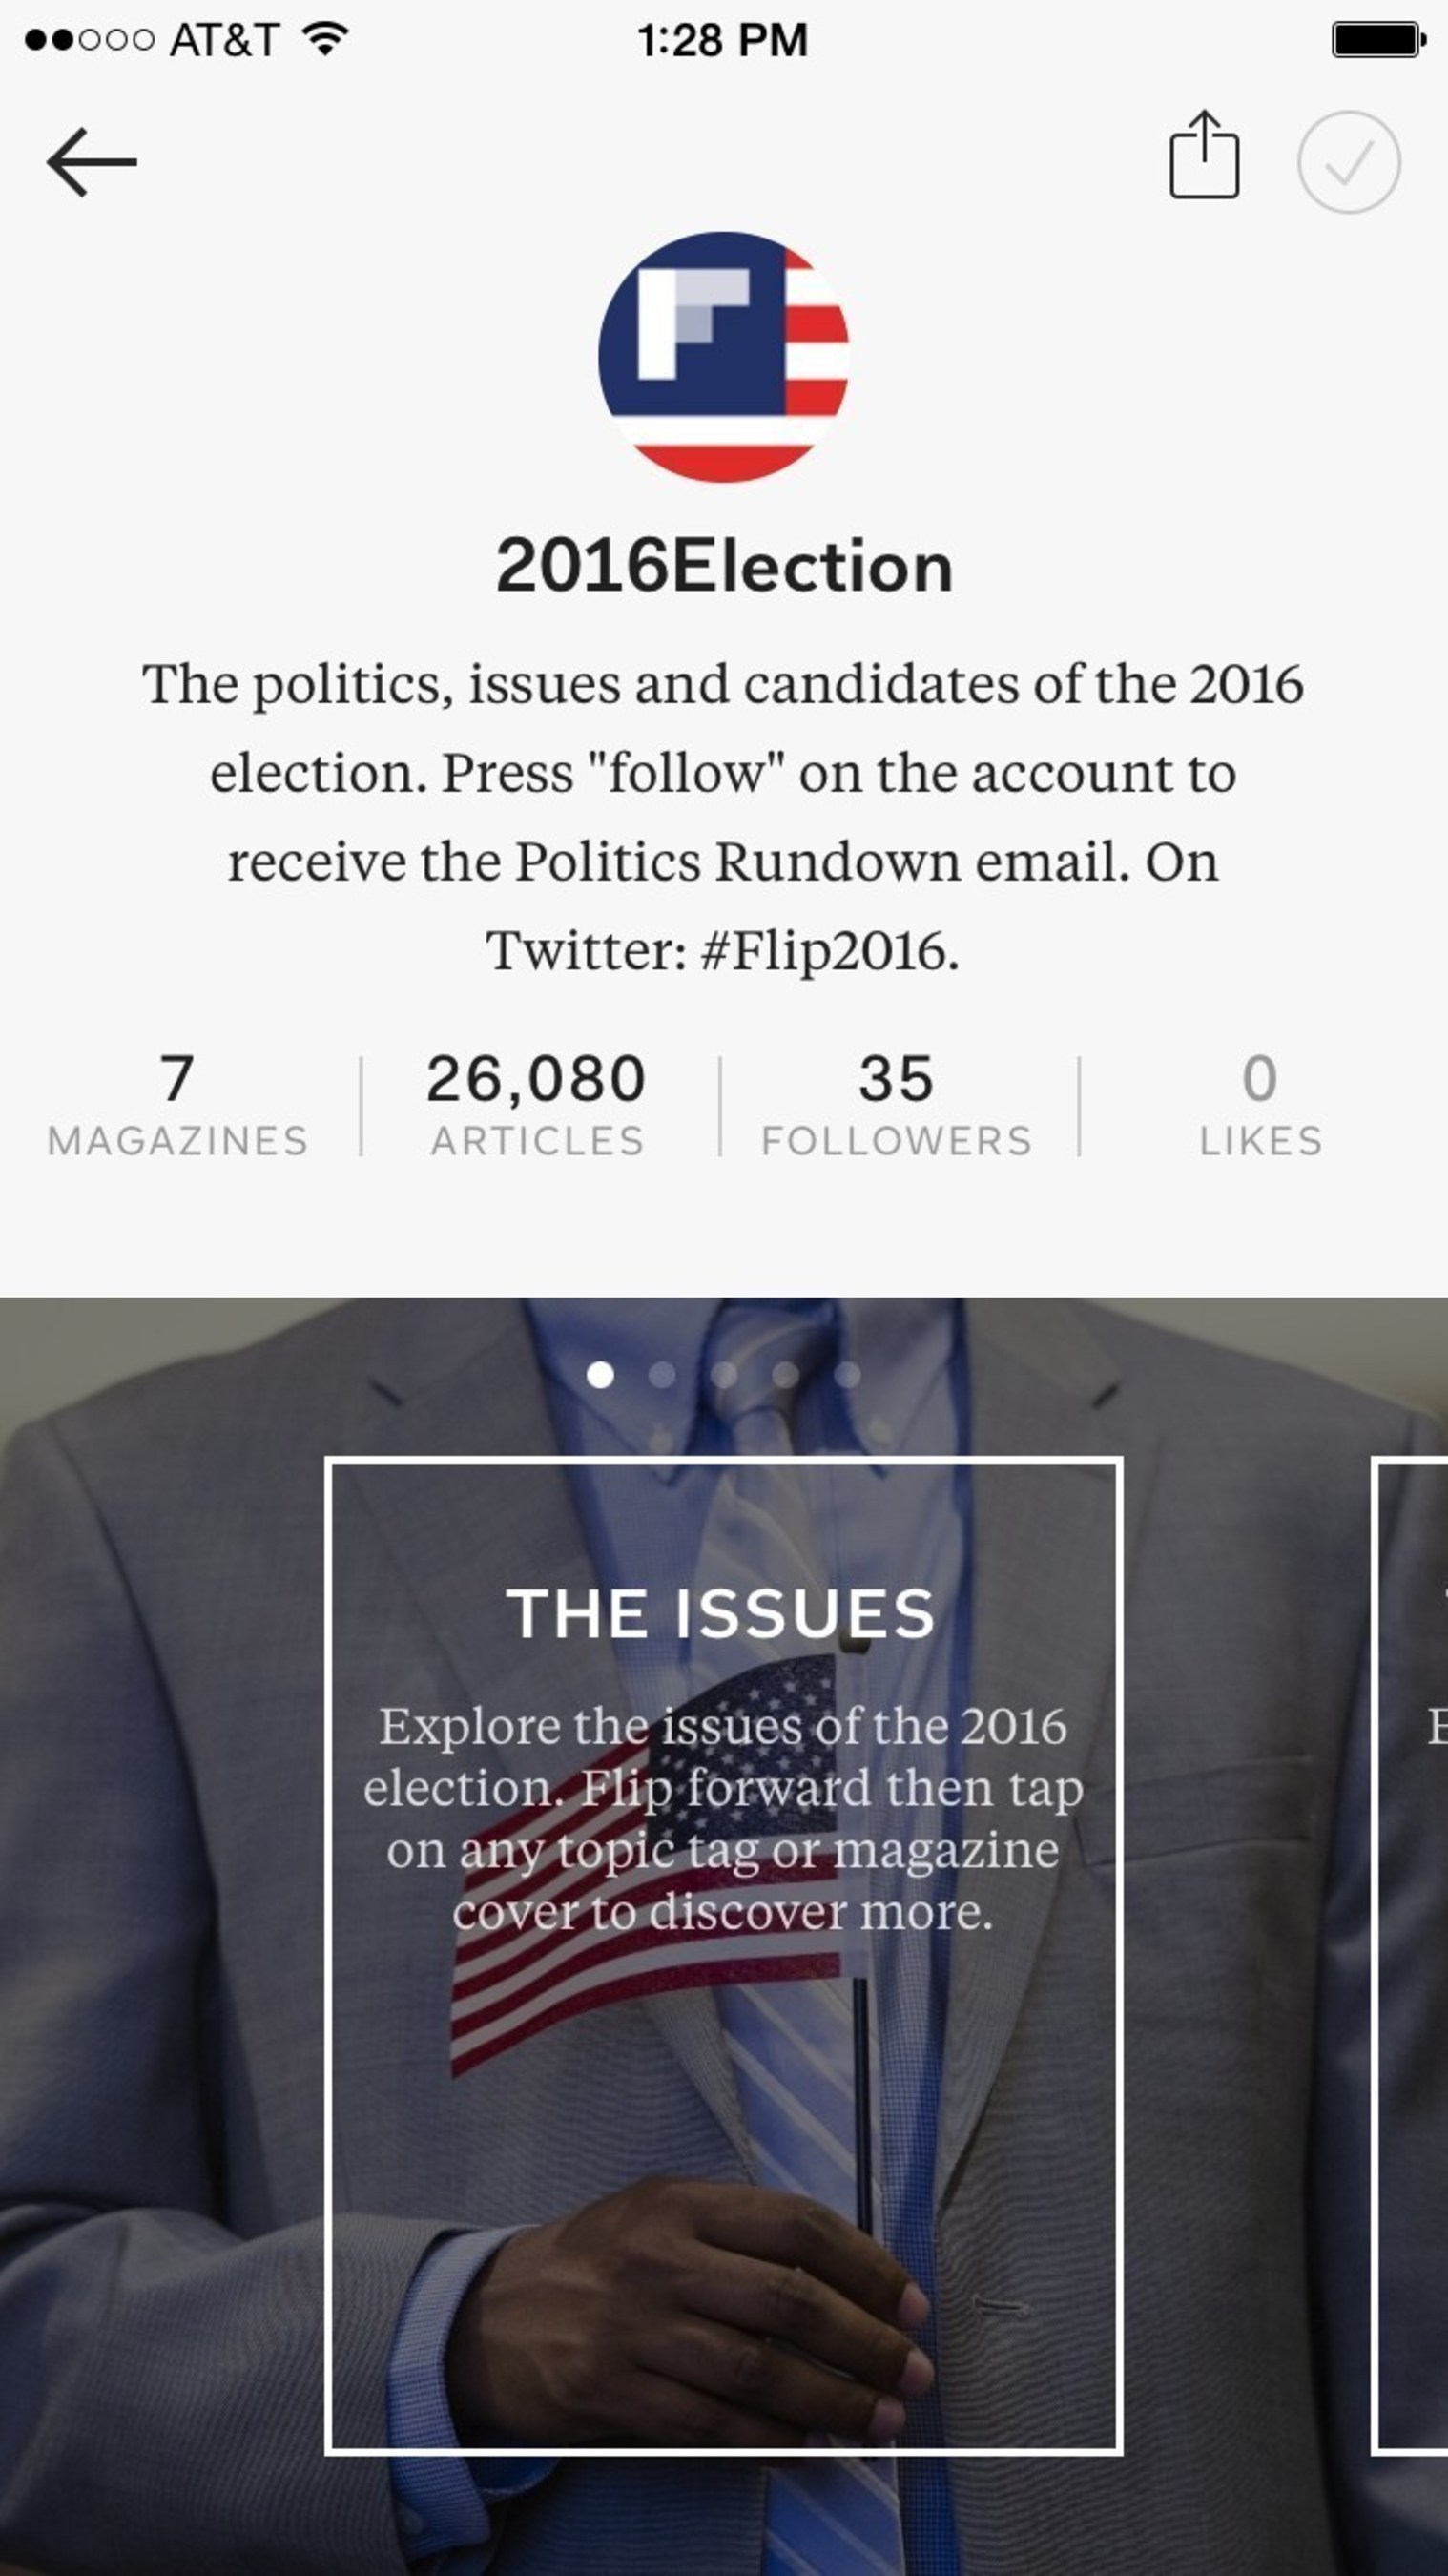 Flipboard Launches 2016 Election Central: All the News and Perspectives on the Campaigns in One Place